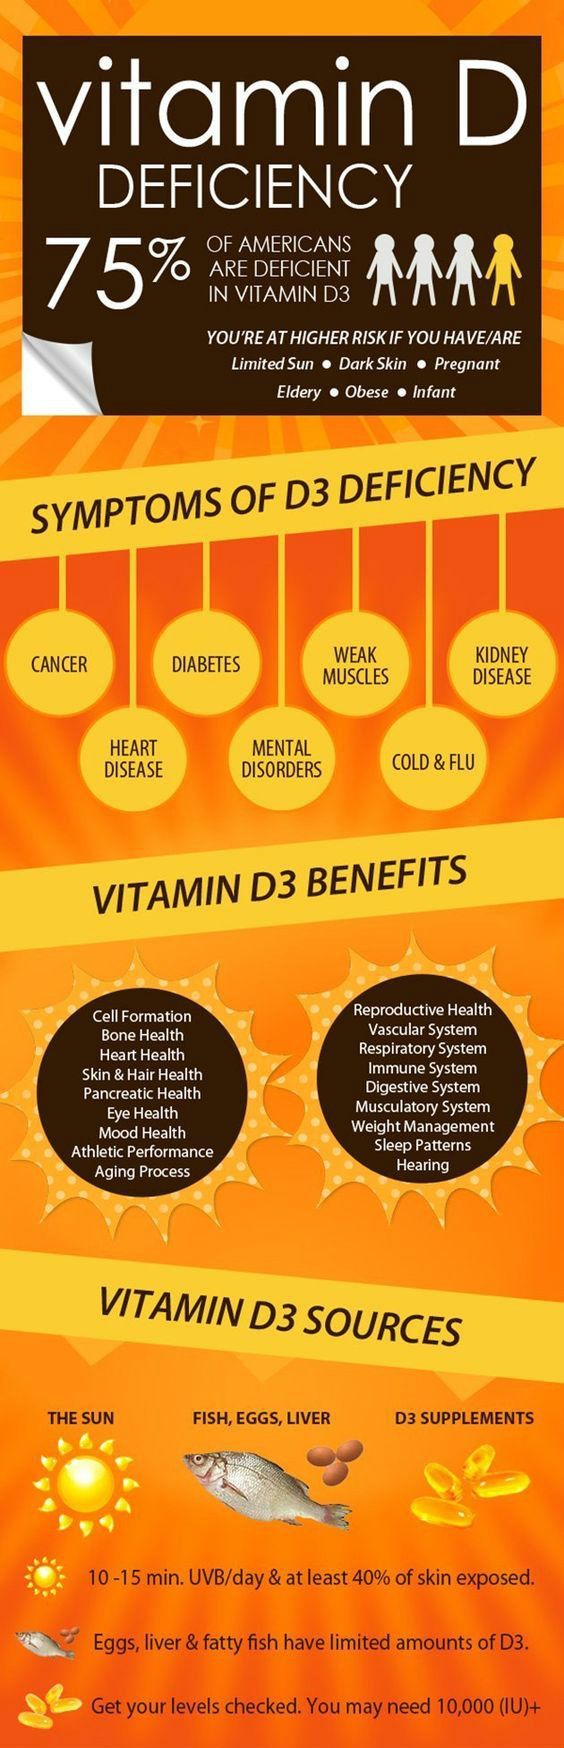 Vitamins are extremely important for the proper functioning of our body